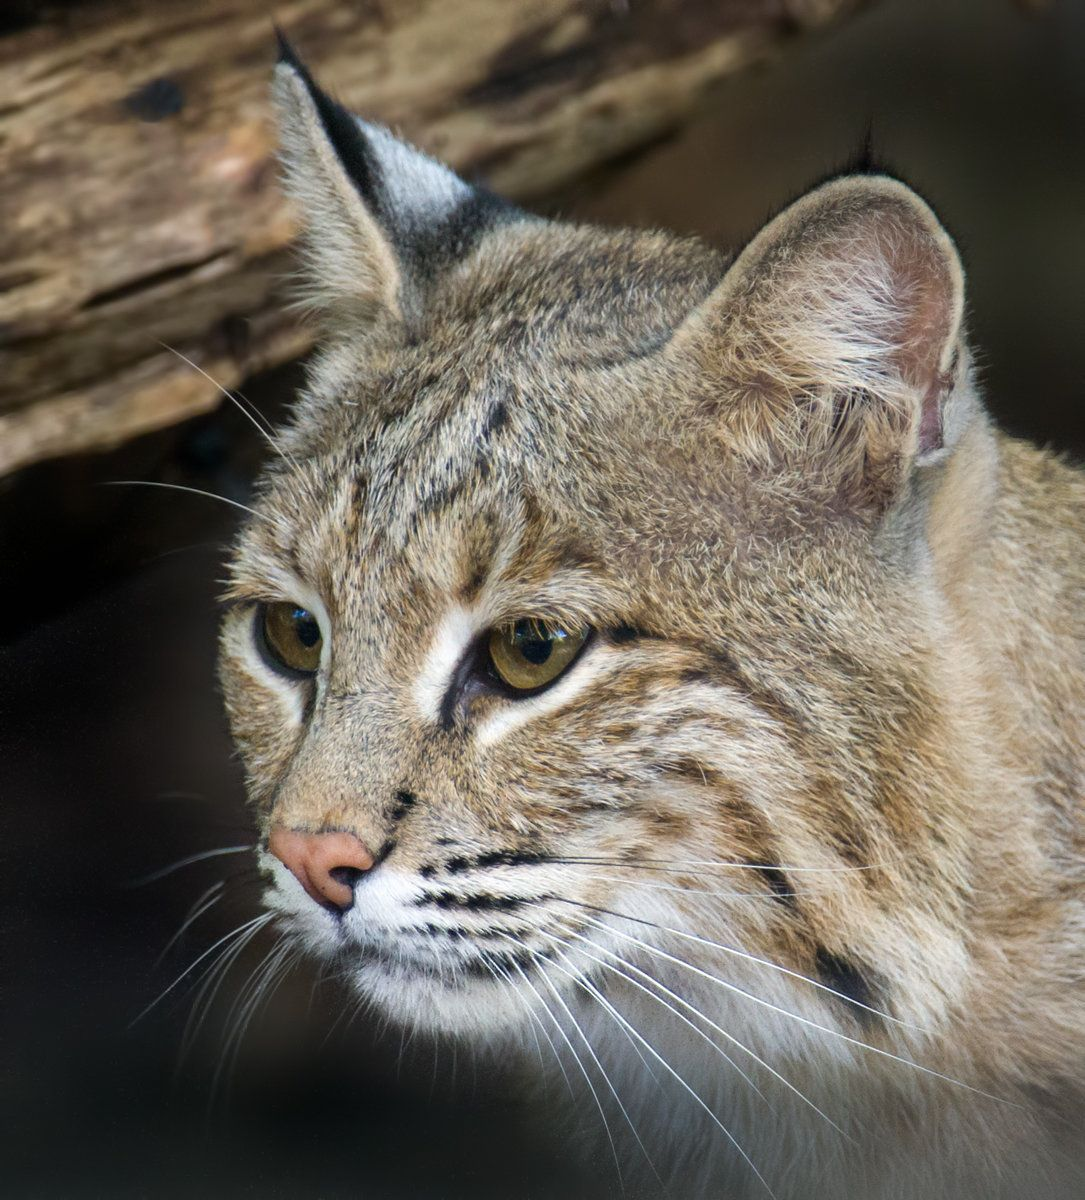 A 25-pound female bobcat named Ollie escaped from Washington DCs Smithsonian Zoo on Monday